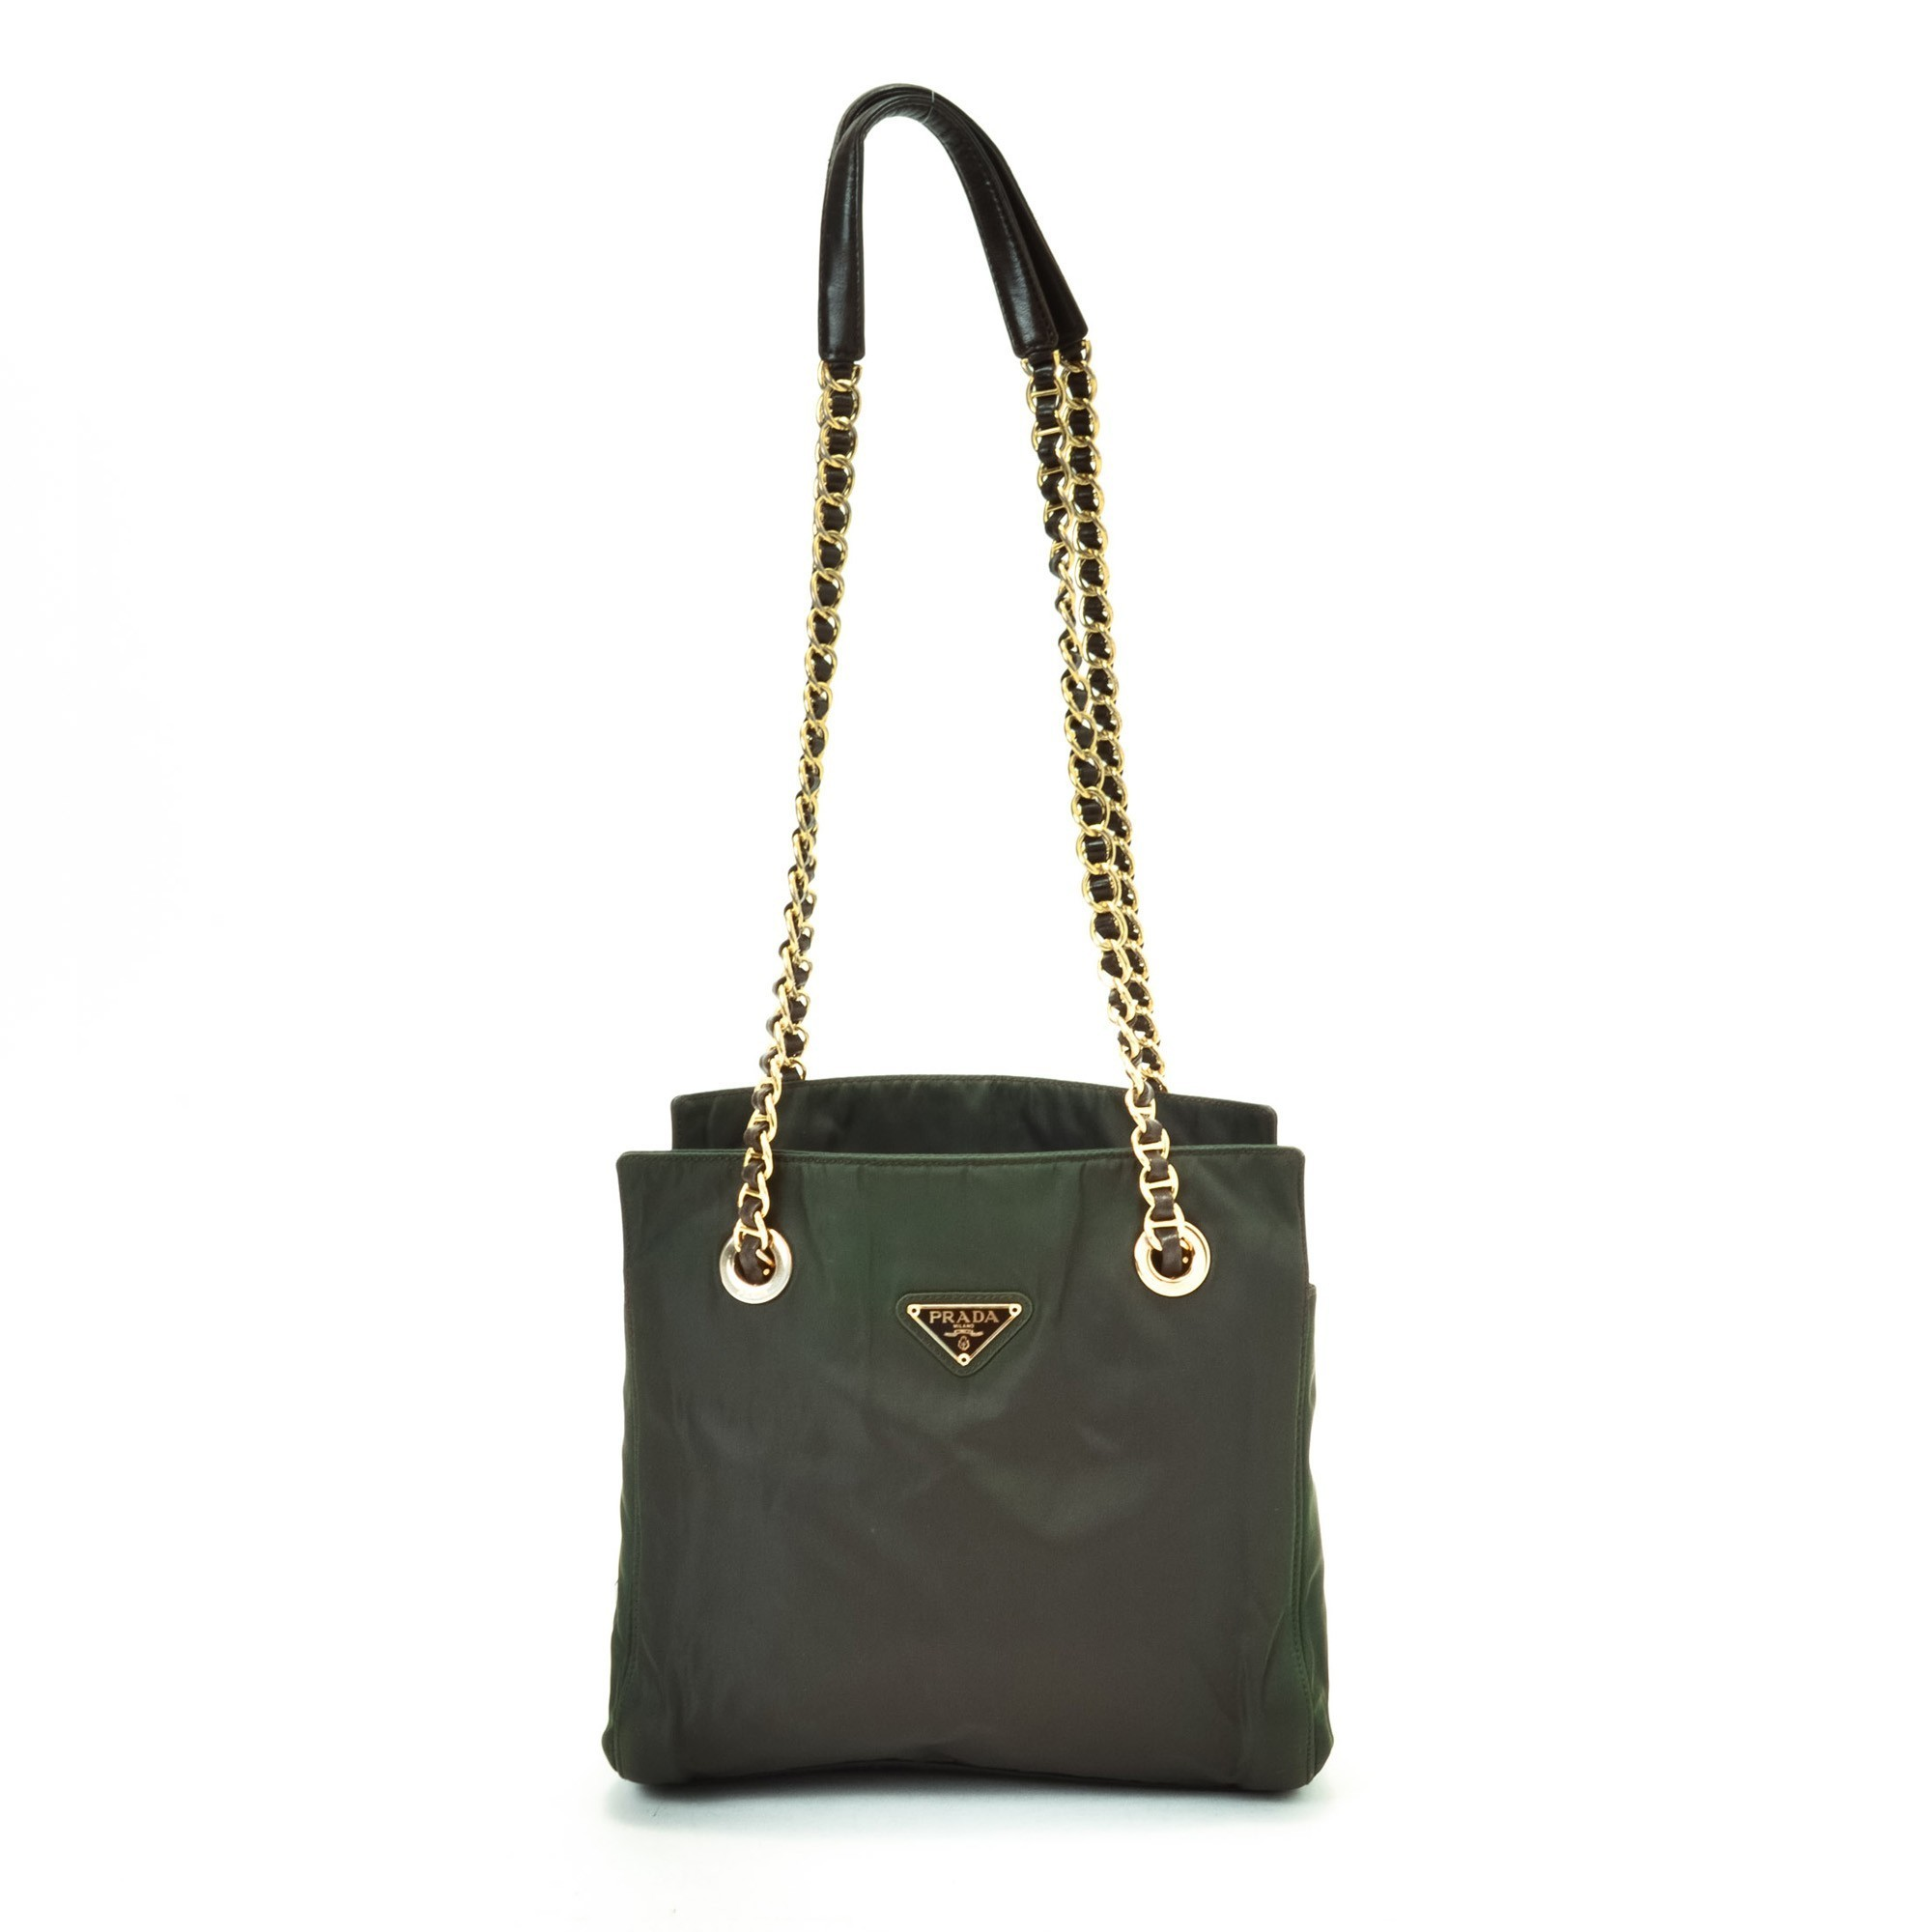 prada handbags knockoffs - Prada Tessuto Chain Shoulder Bag Khaki Nylon Shoulder Bag - LXR\u0026amp;CO ...